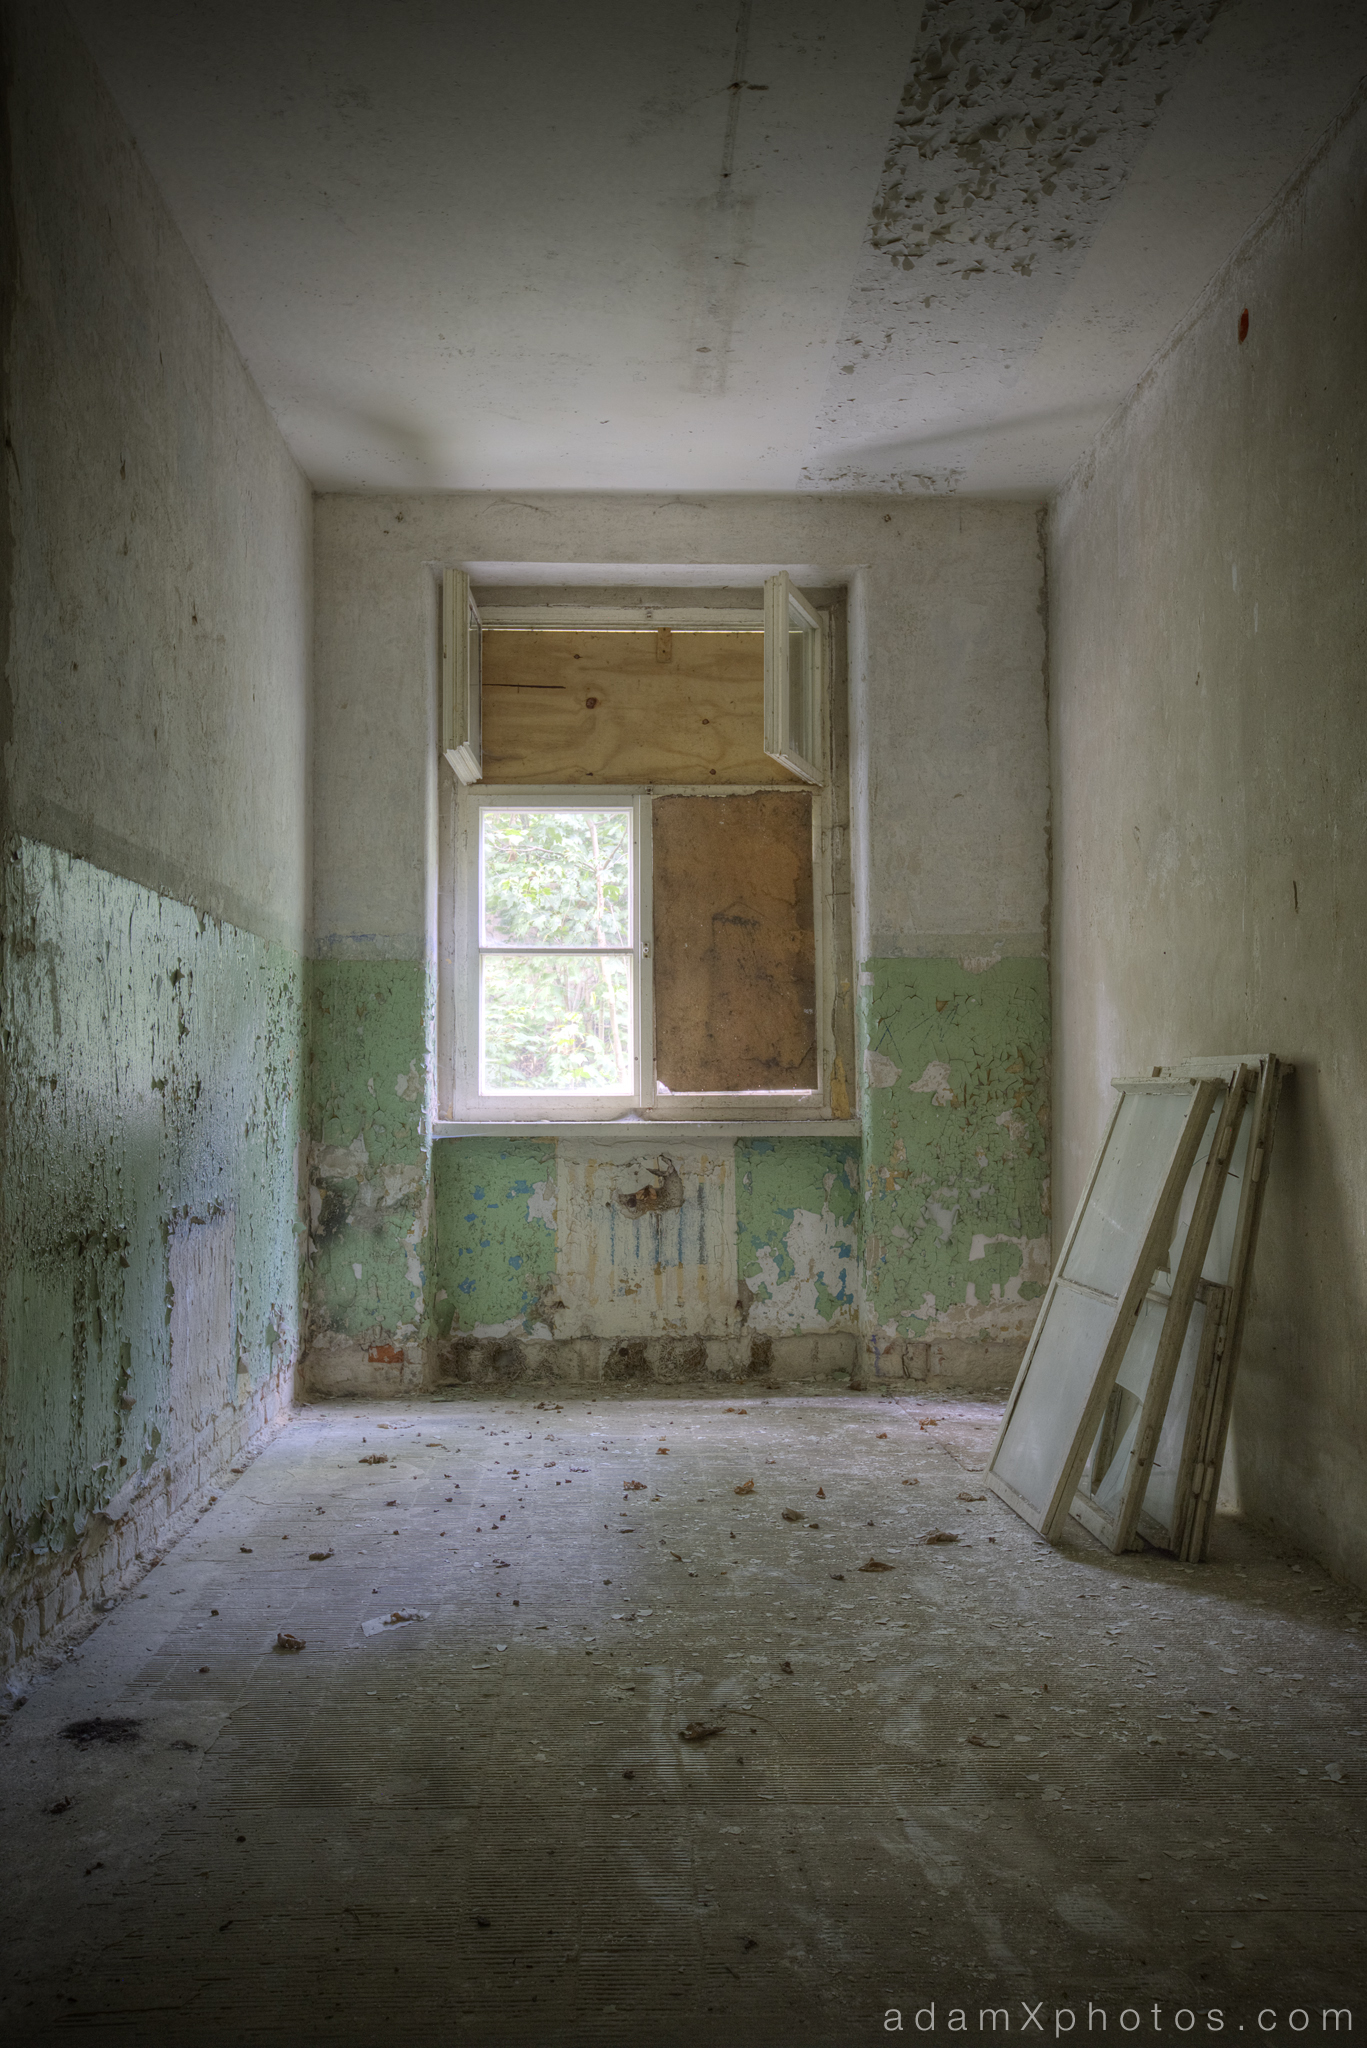 Adam X Urbex Urban Exploration Abandoned Germany Wunsdorf barracks soviet windows peeling paint green